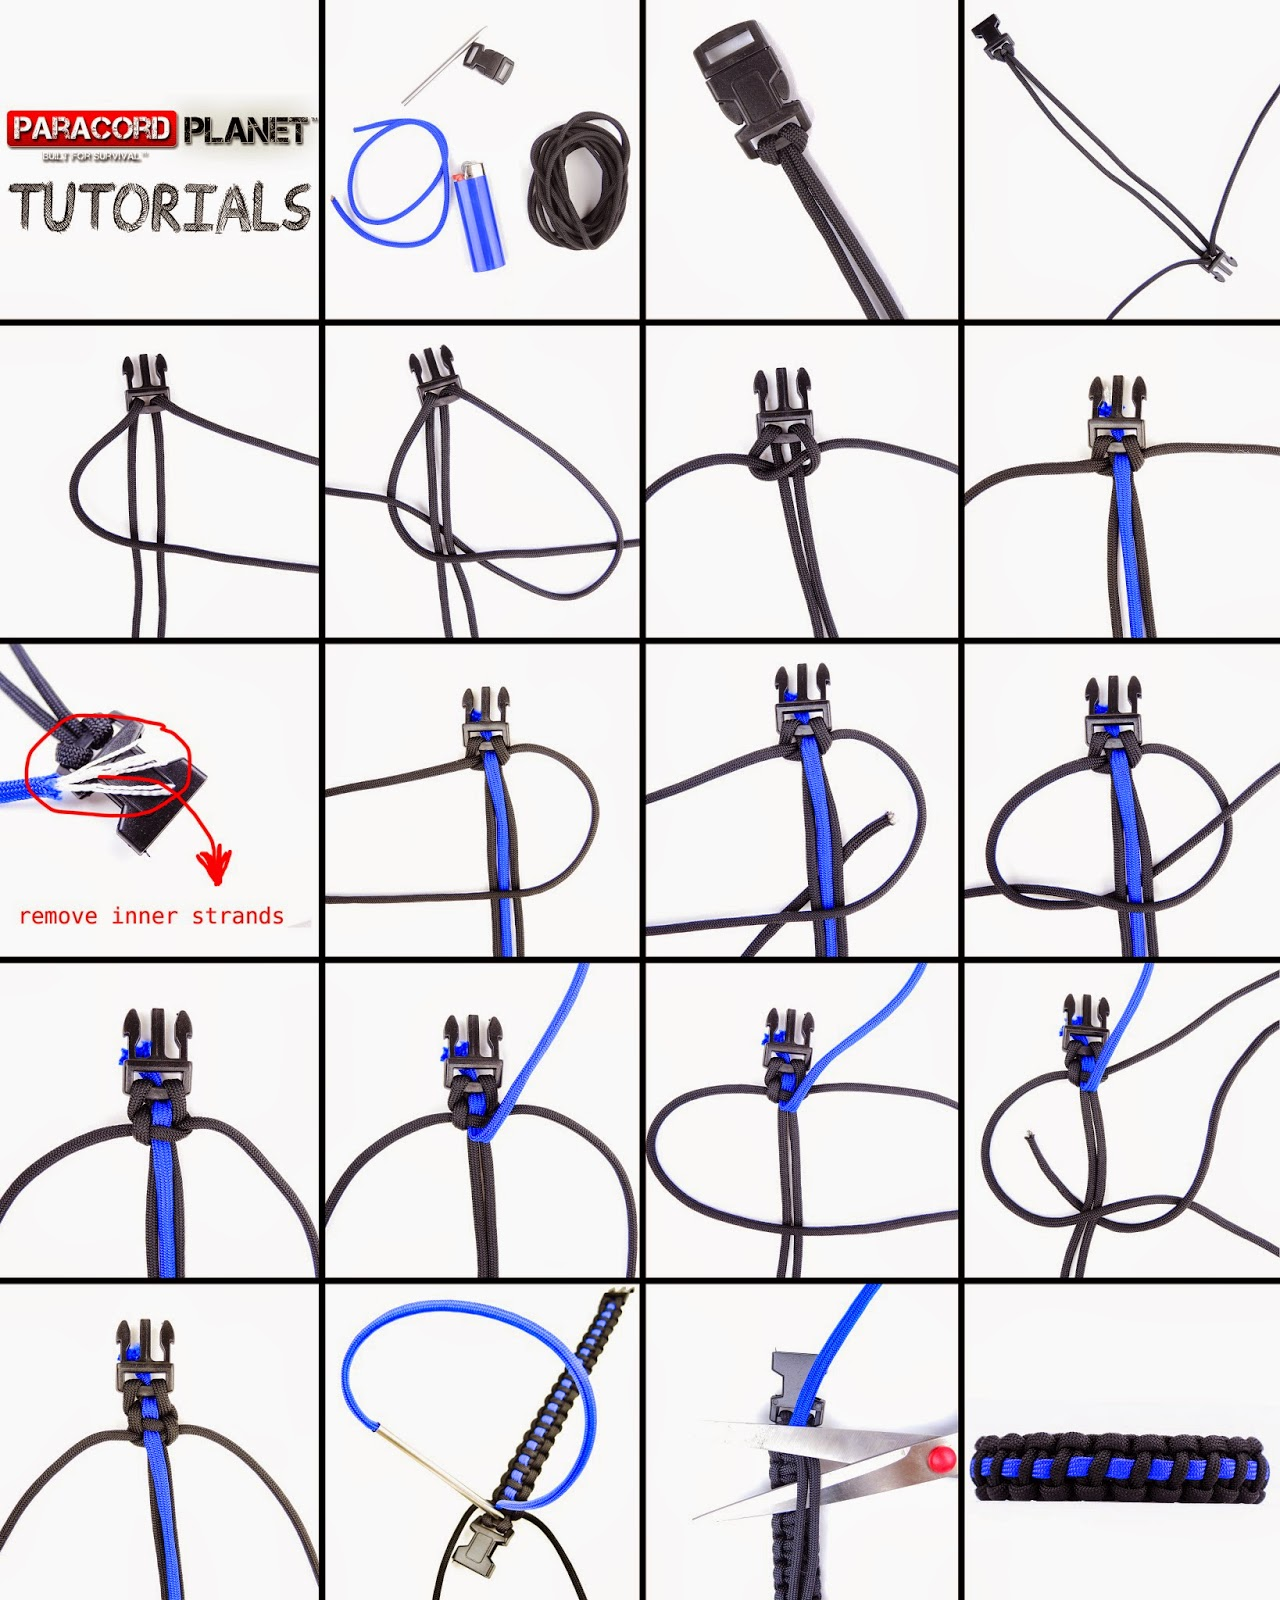 instructions on how to make a paracord bracelet